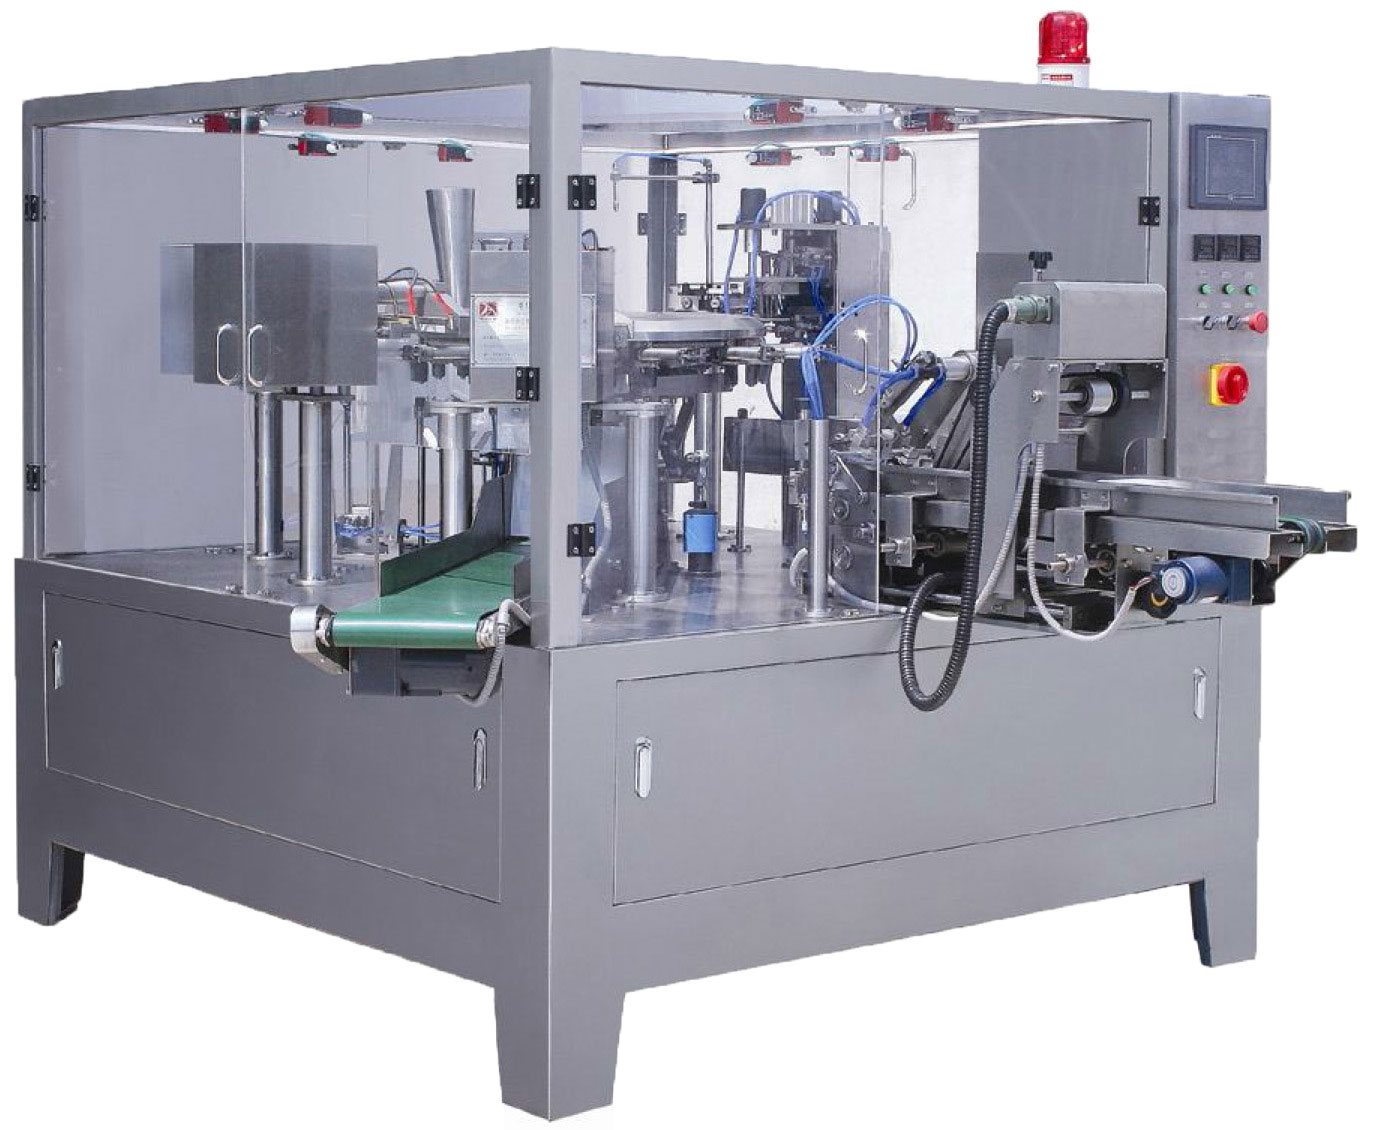 blister packing machine, blister packaging machine, packaging machine, actionpac, poucher, pouch machine, pouch packing, pouch packaging, poucher bagger, pouch bagger, pouching machine, weigh filling poucher, weigh filling poucher machine, best poucher, best pouch machine,